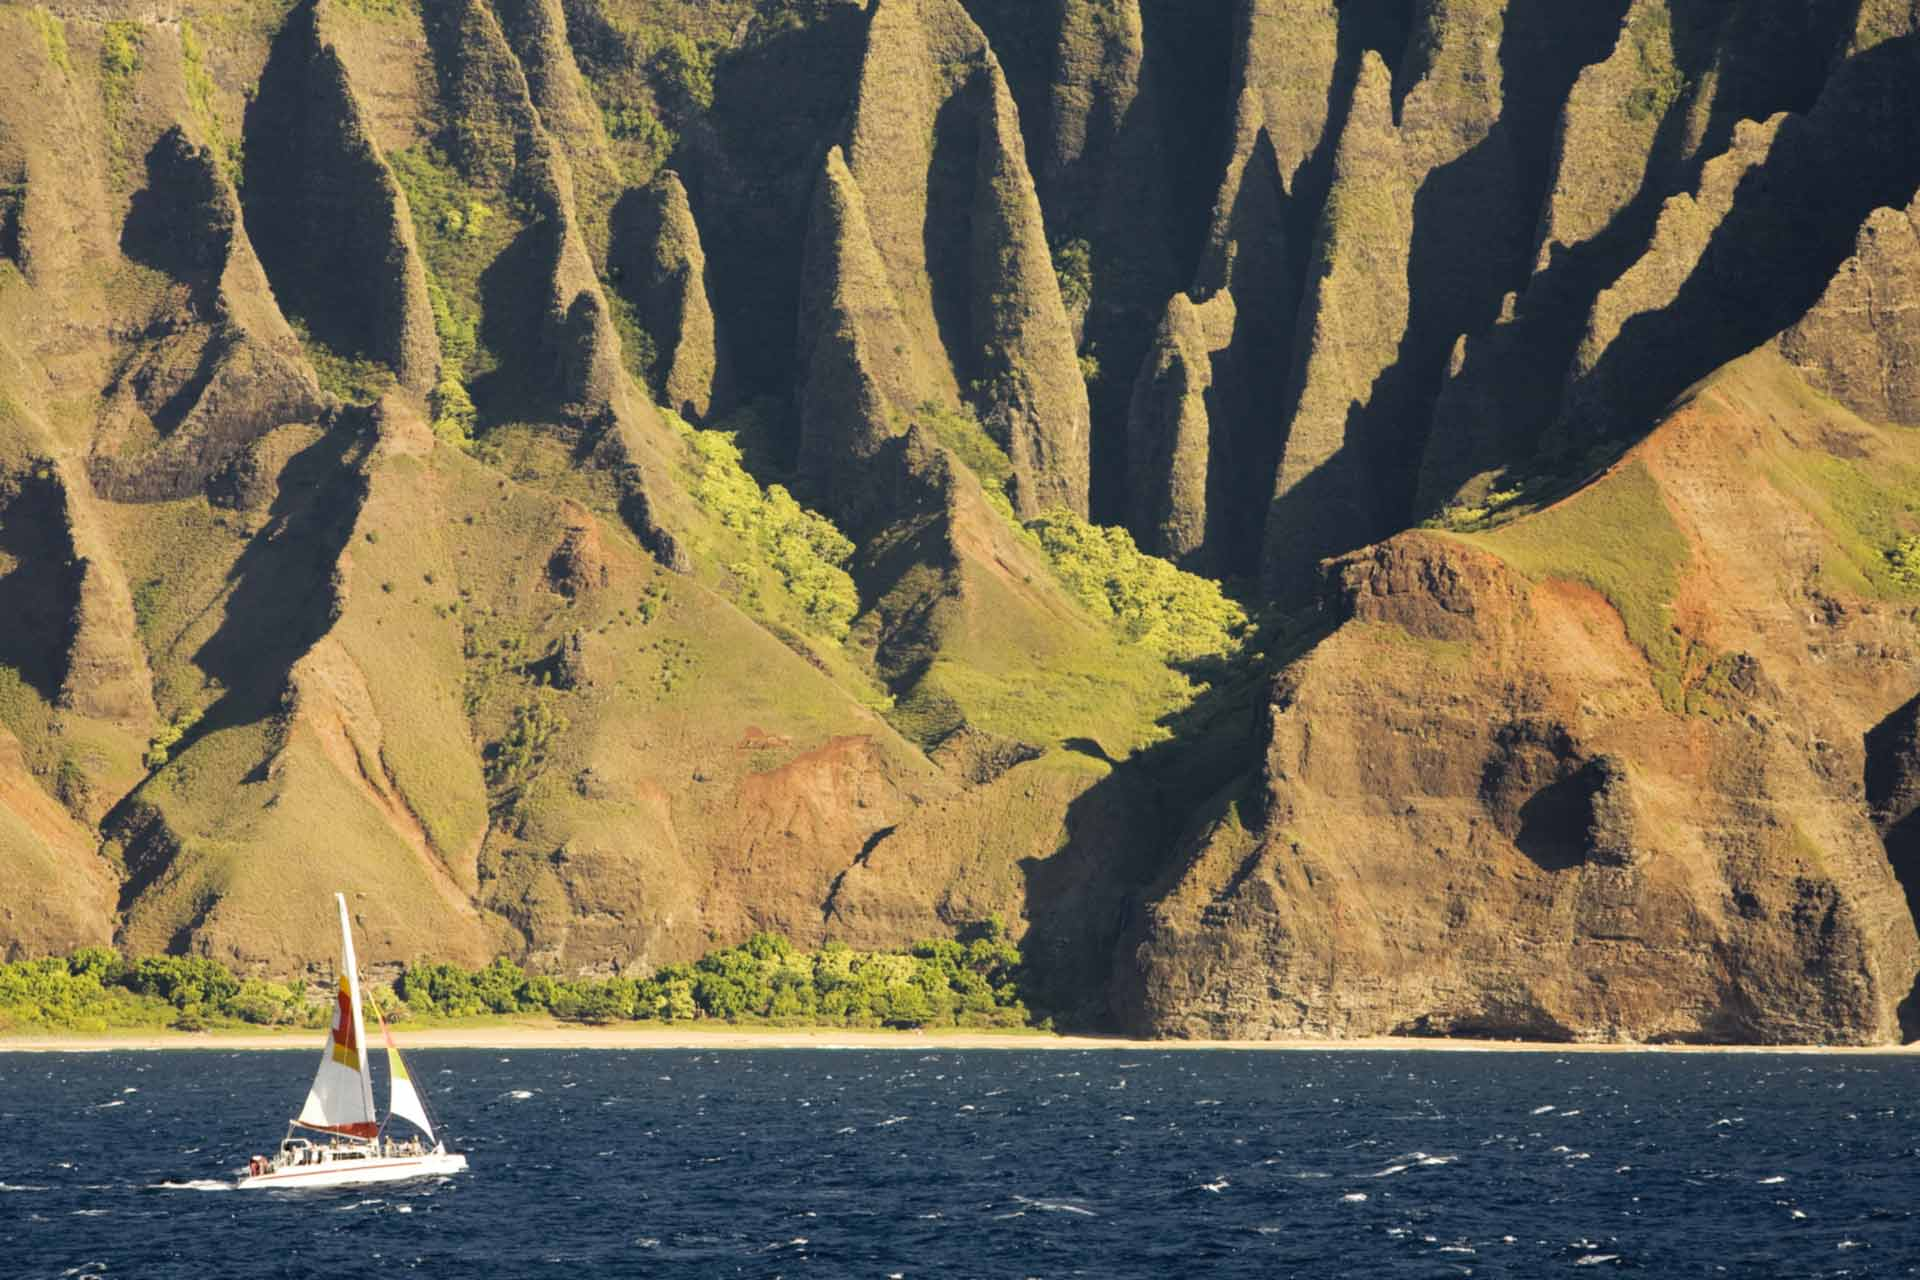 Kauai Tours - Sightseeing Activities and Attractions